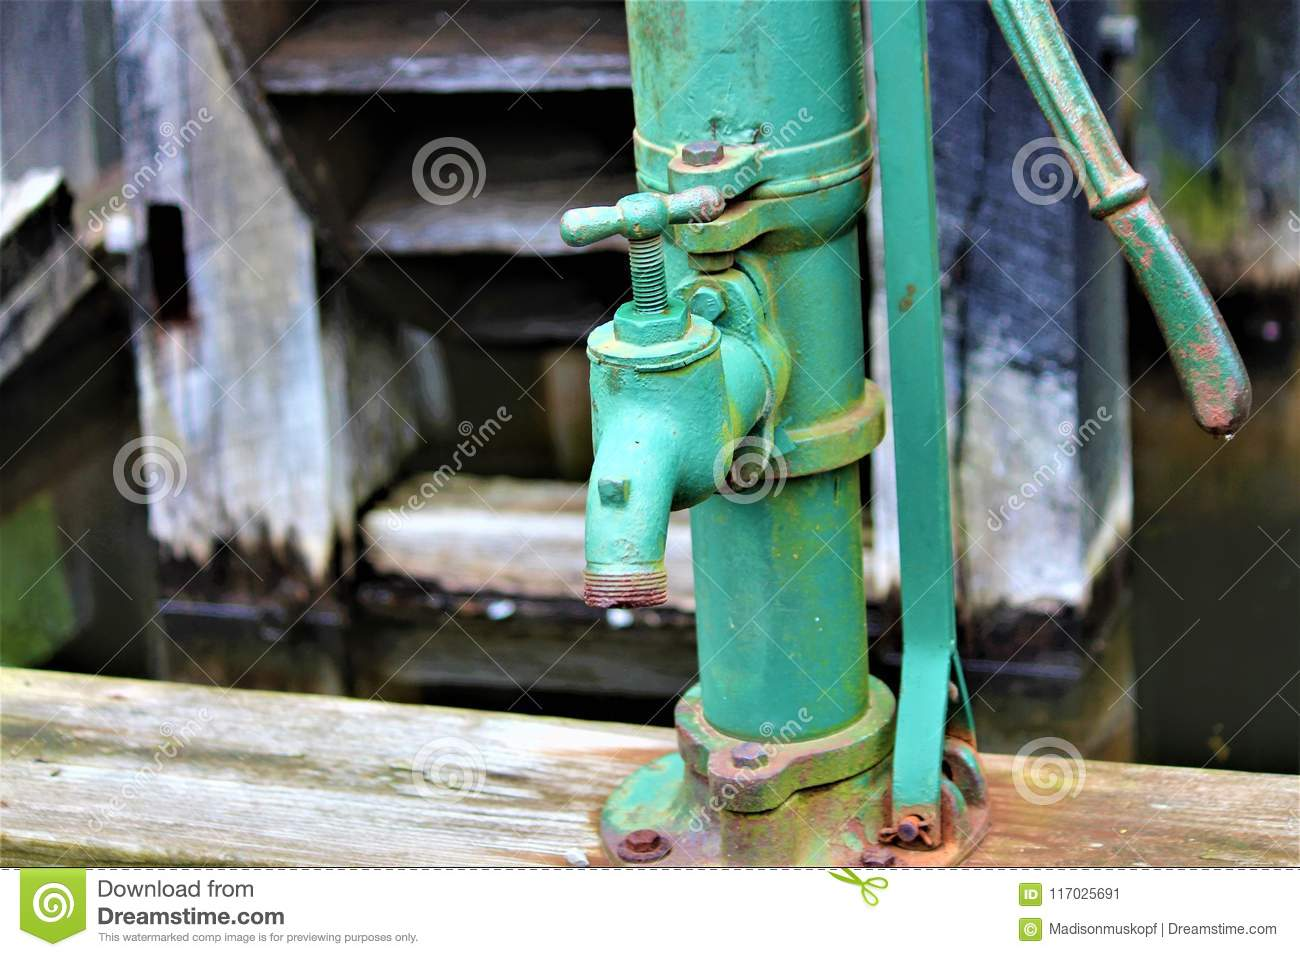 Antique Water Pump stock image. Image of green, isolated - 117025691